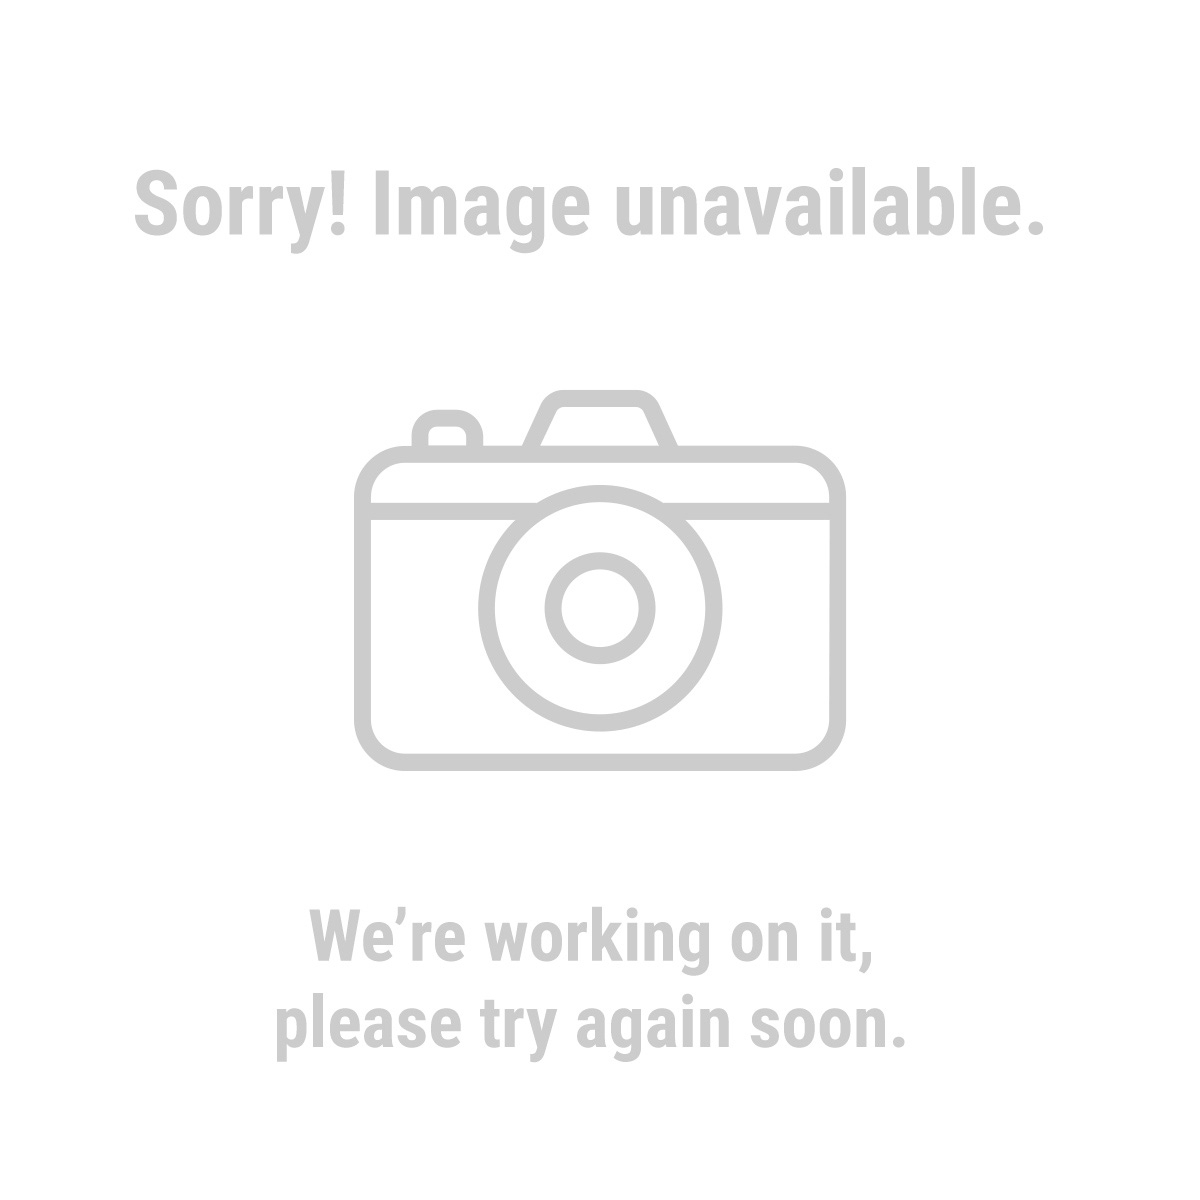 97484 3 Piece Manual Racing Pedal Set with Grey and Black Grip Inserts